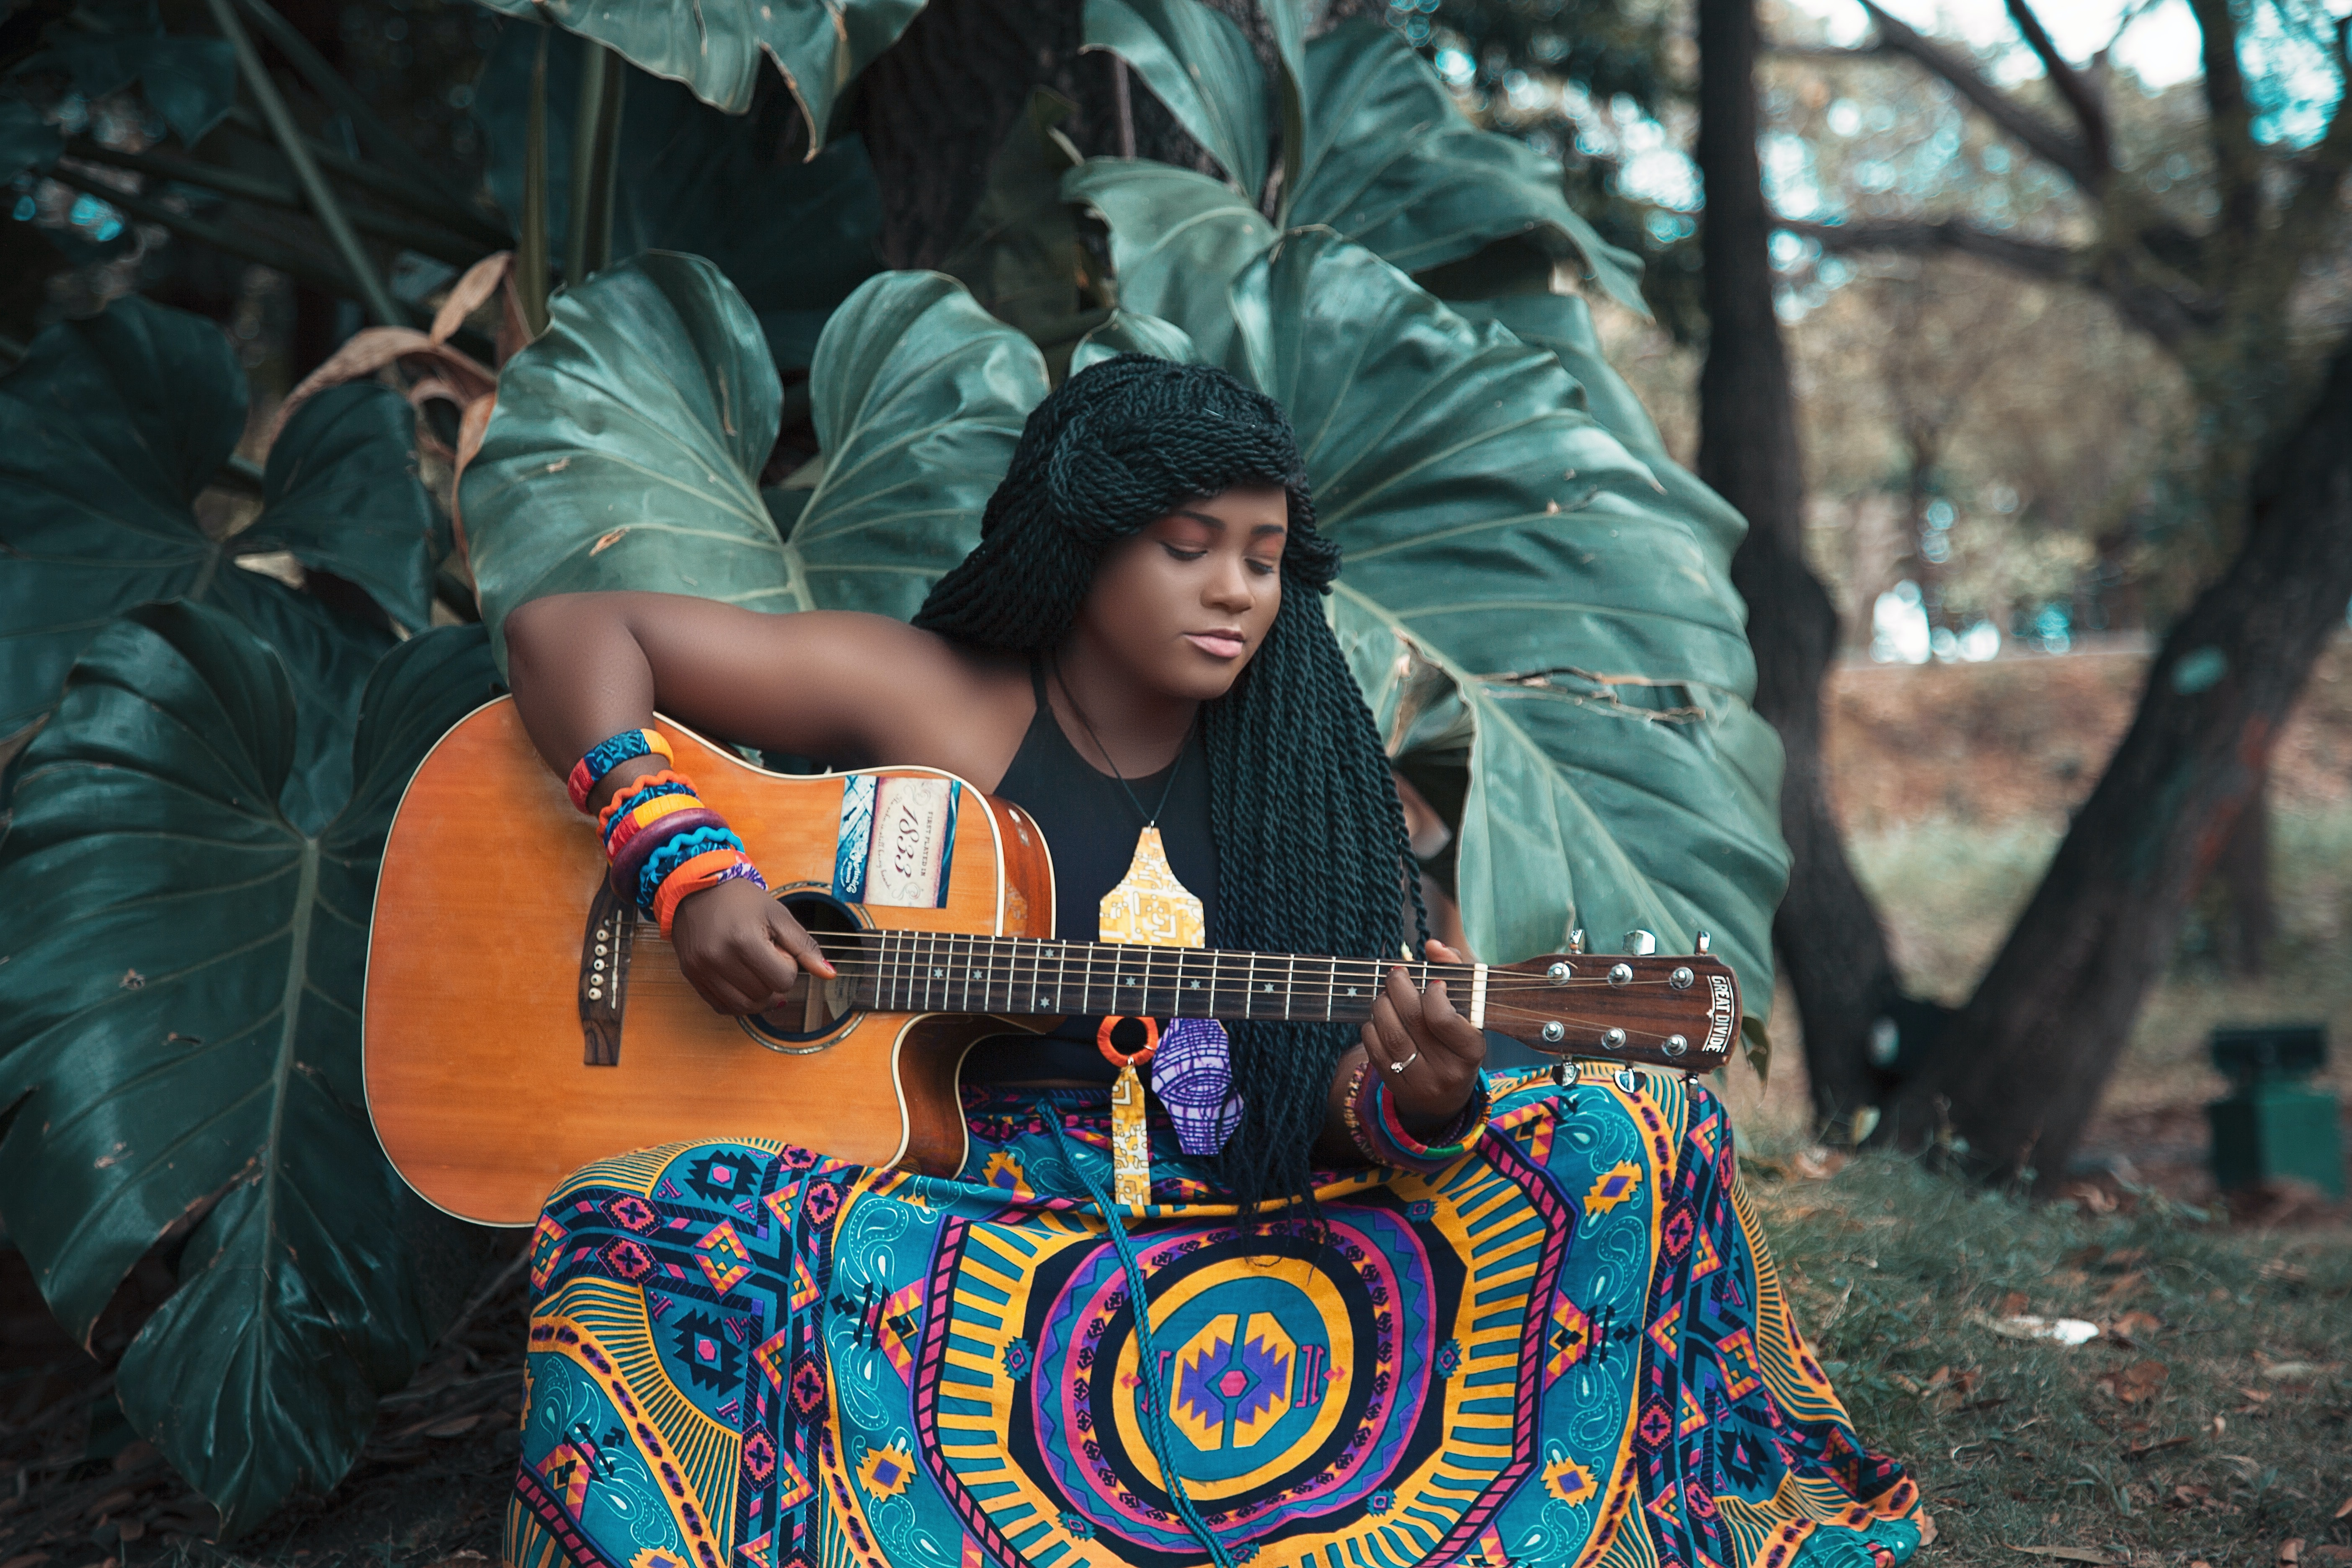 A woman with long twists in her hair and an ornate skirt plays a guitar outdoors